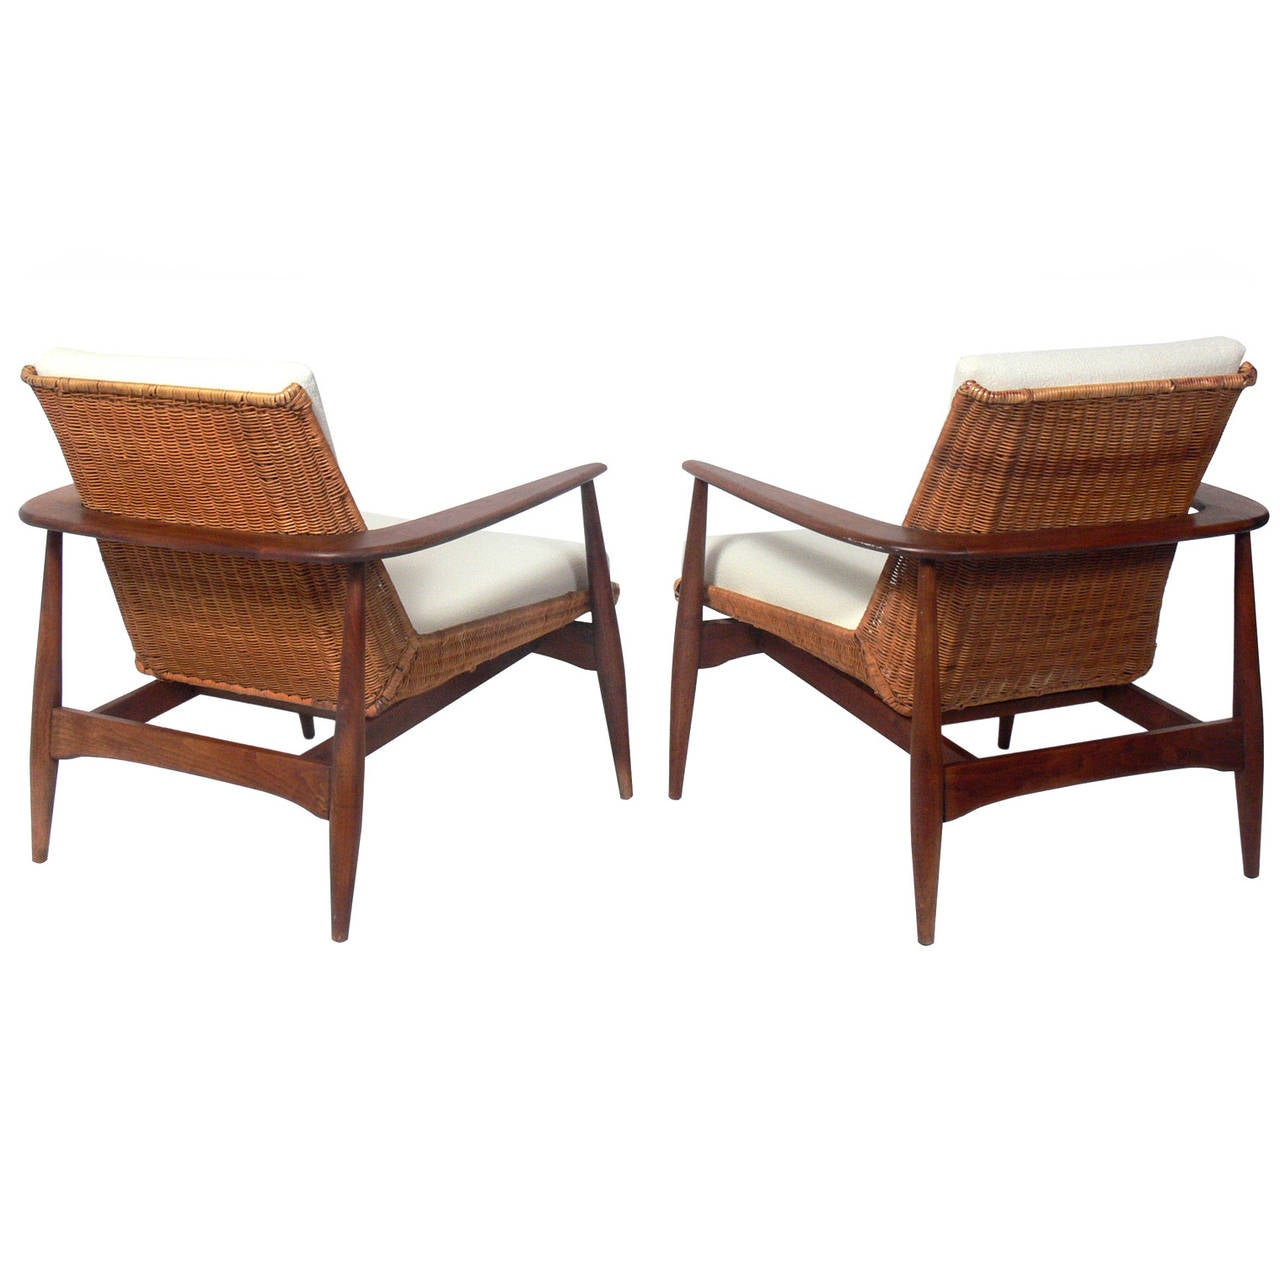 Modern Lounge Chairs Pair Of Danish Modern Lounge Chairs By Lawrence Peabody At